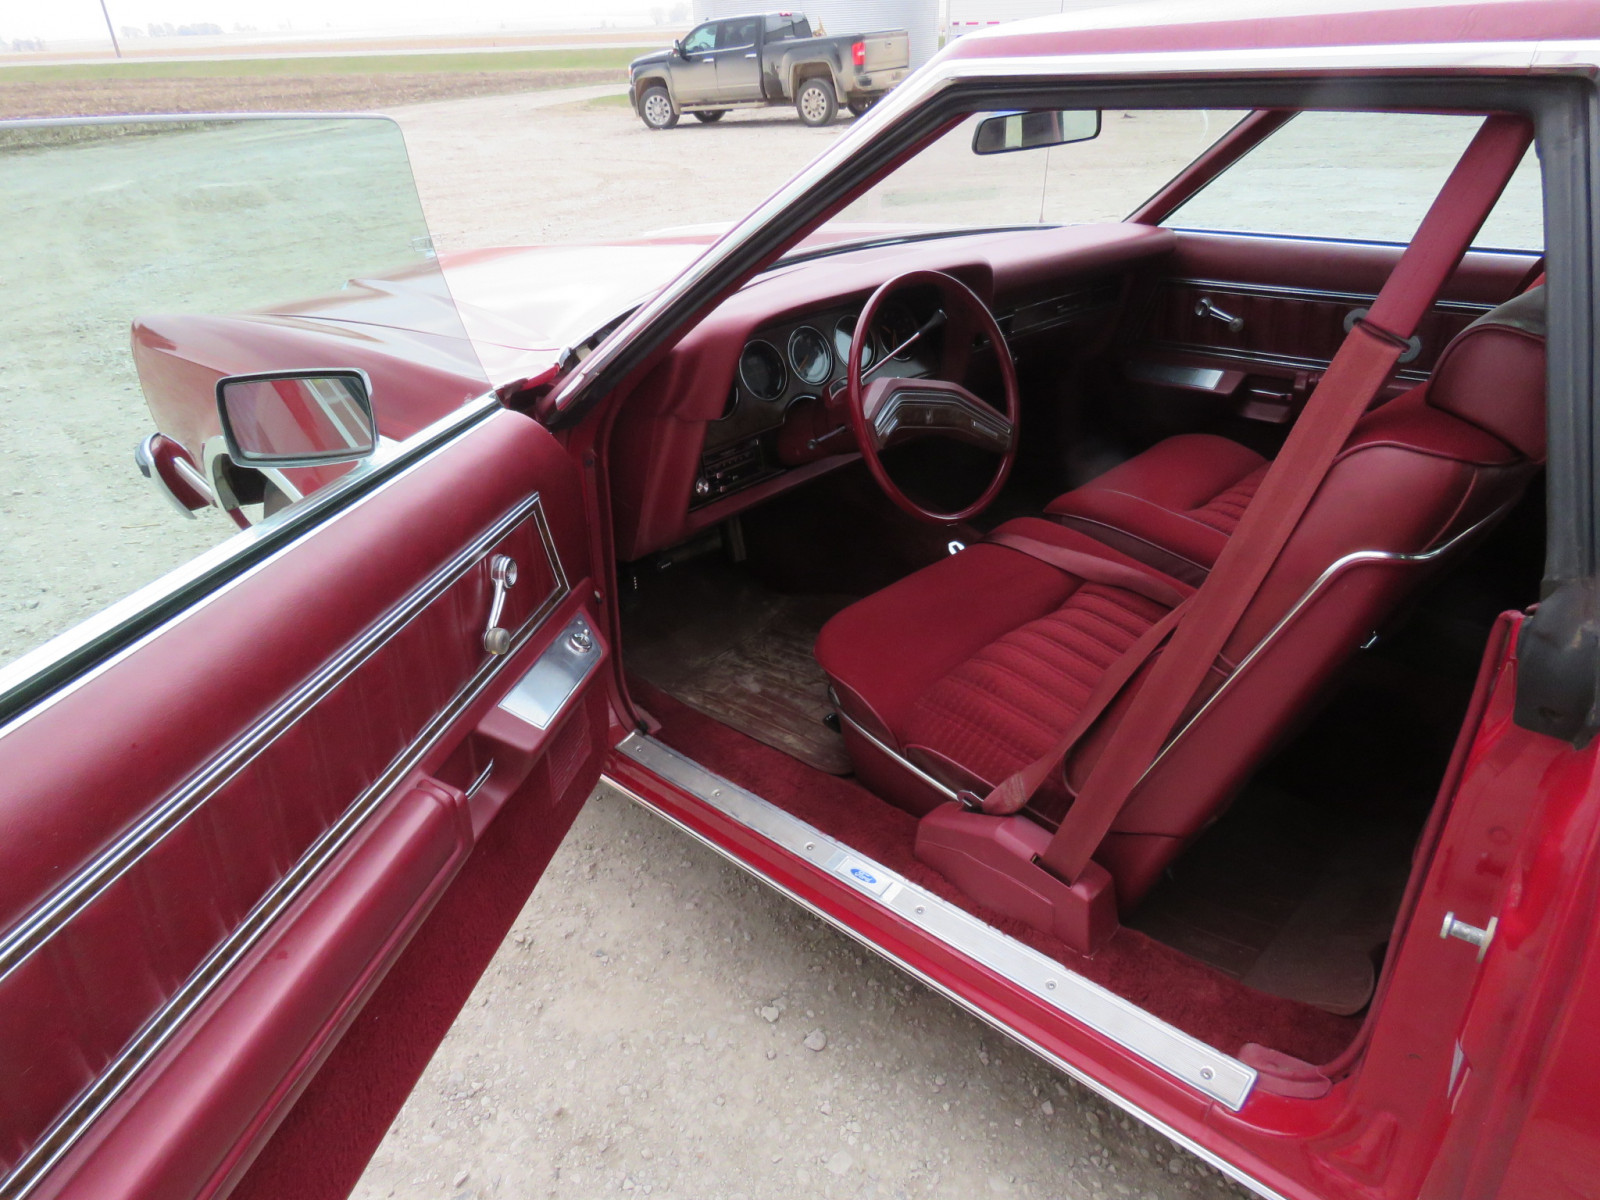 1979 Ford Thunderbird Coupe - Image 7